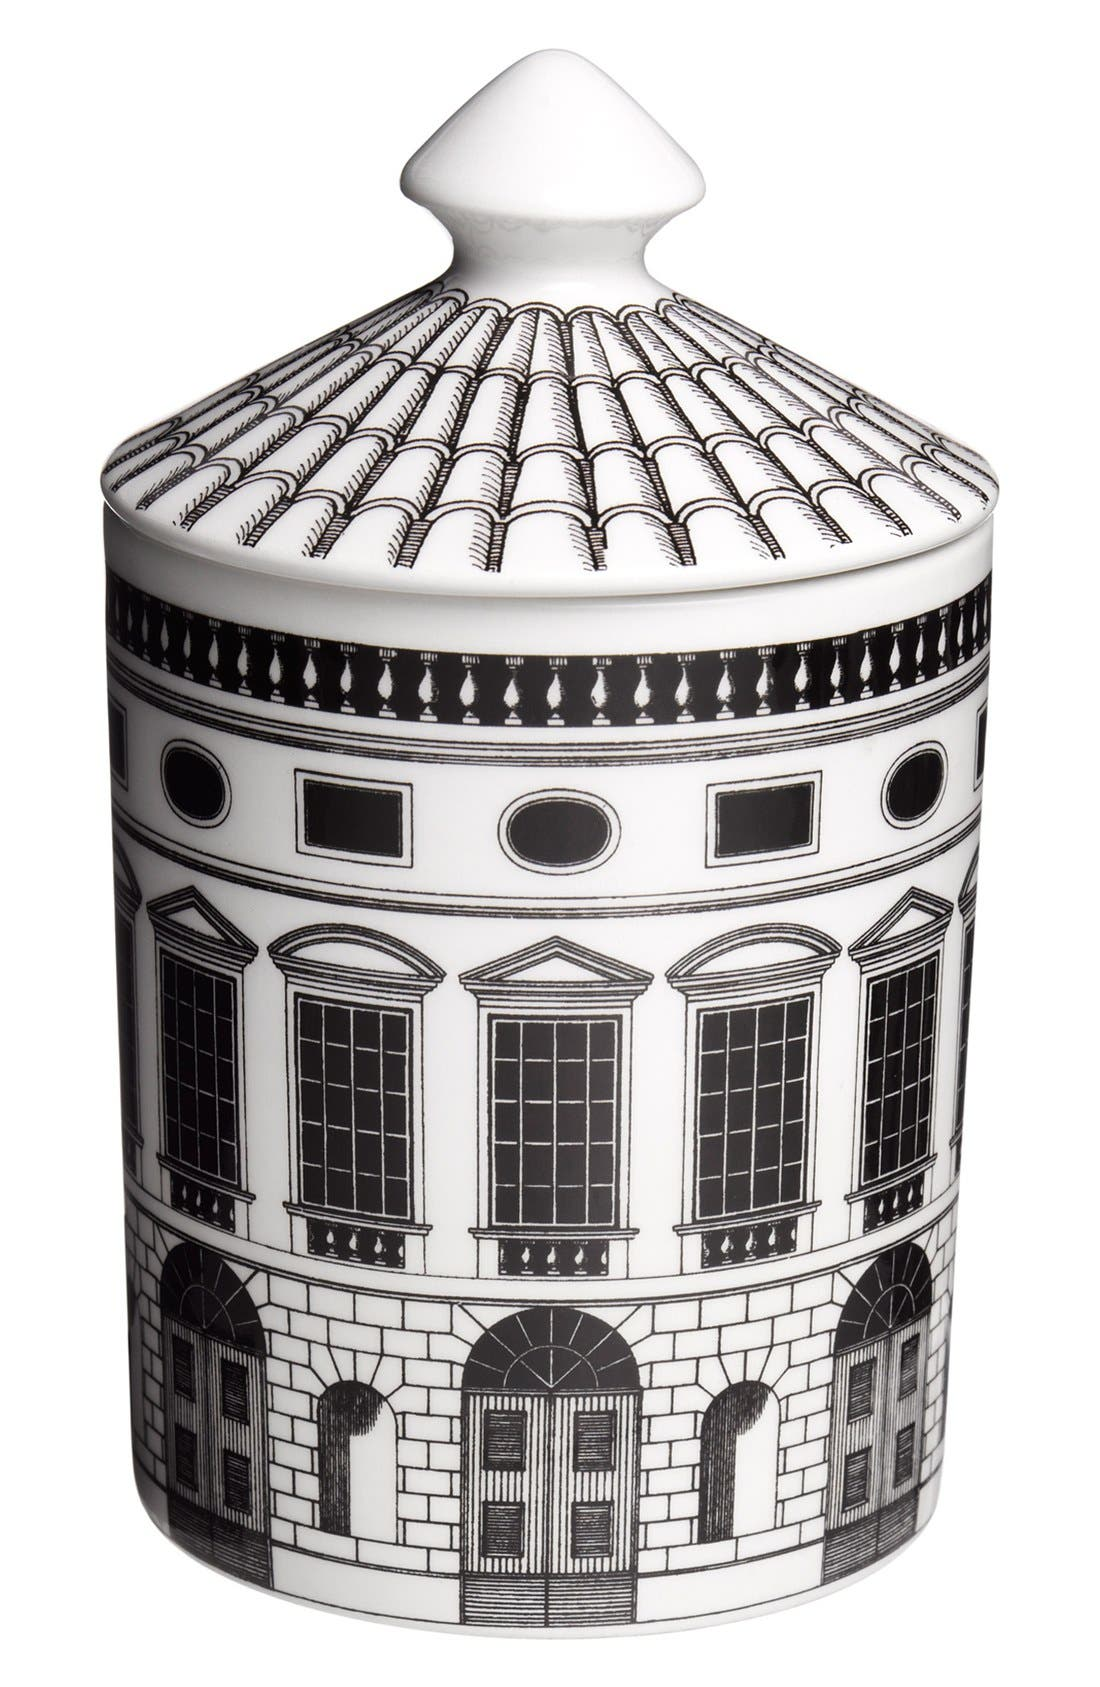 'Architettura - Otto' Lidded Candle,                             Main thumbnail 1, color,                             000